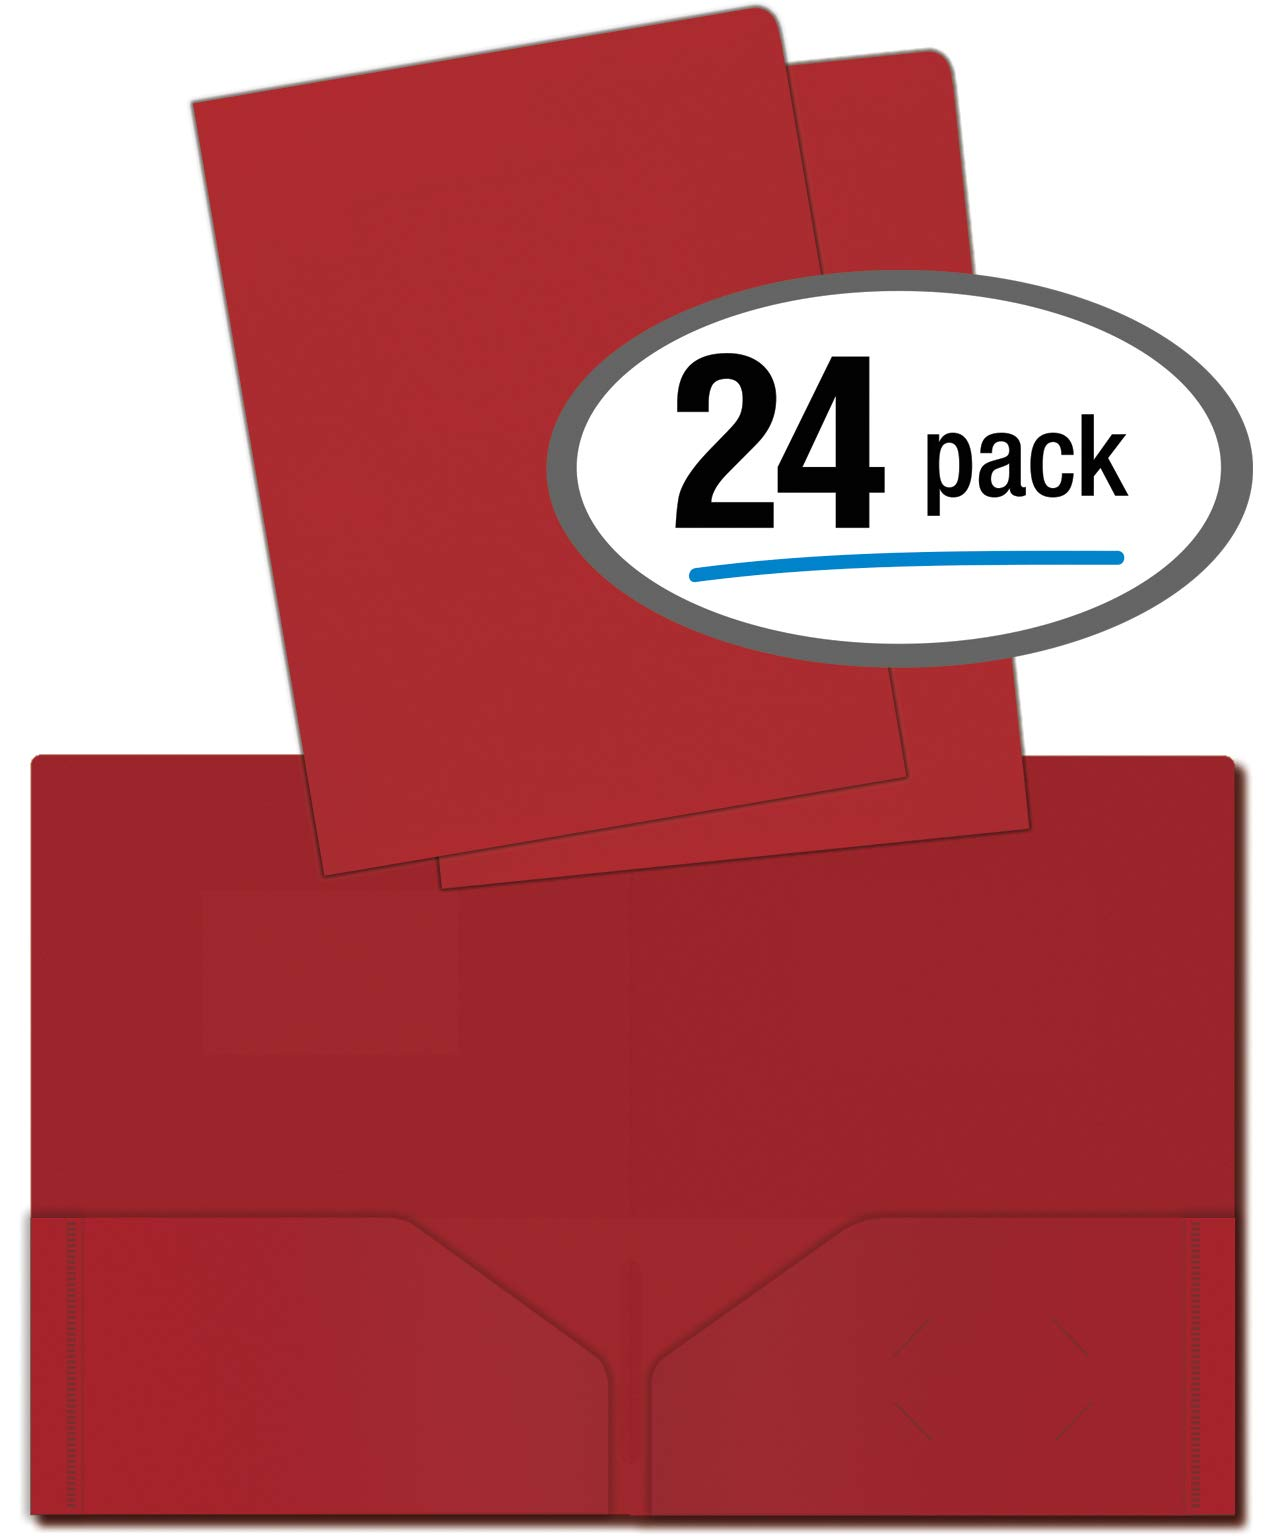 Heavyweight Plastic 2 Pocket Portfolio Folder, Letter Size Poly Folders by Better Office Products, 24 Pack (Red) by Better Office Products